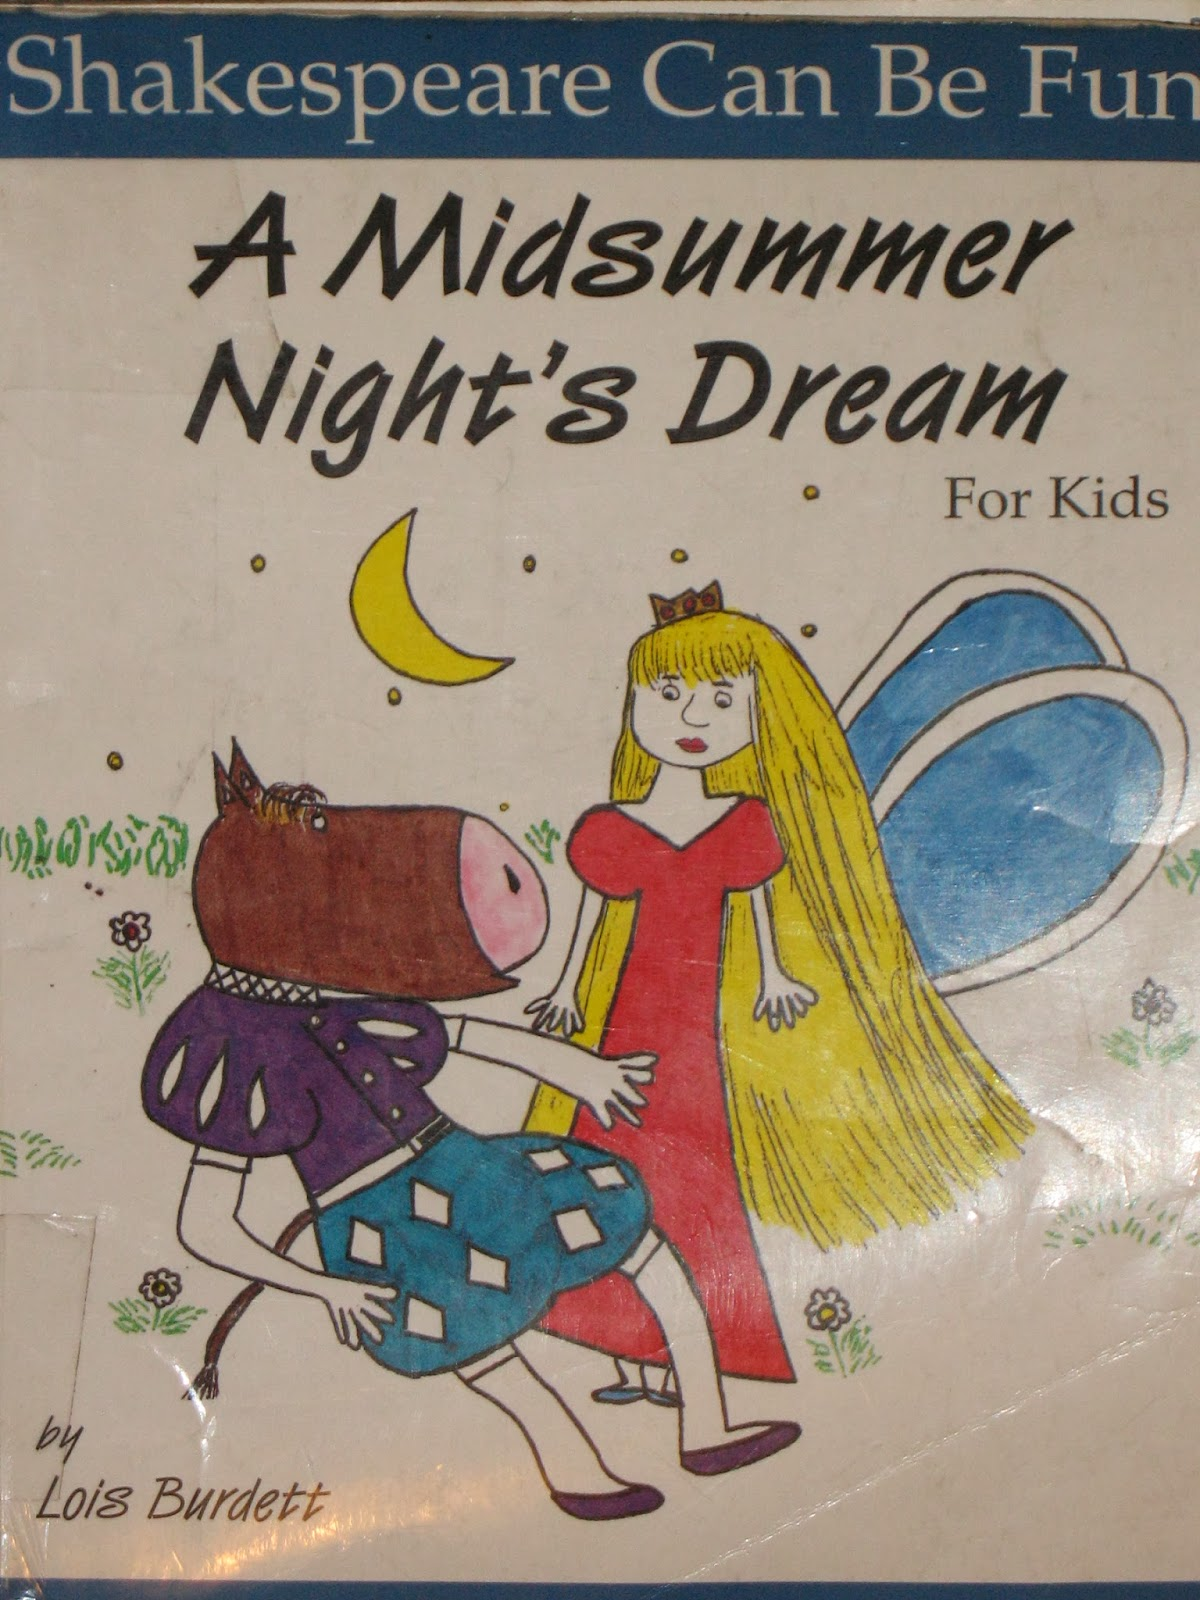 an analysis of a midsummer nights dream by shakespeare Need help with act 3, scene 1 in william shakespeare's a midsummer night's dream check out our revolutionary side-by-side summary and analysis.